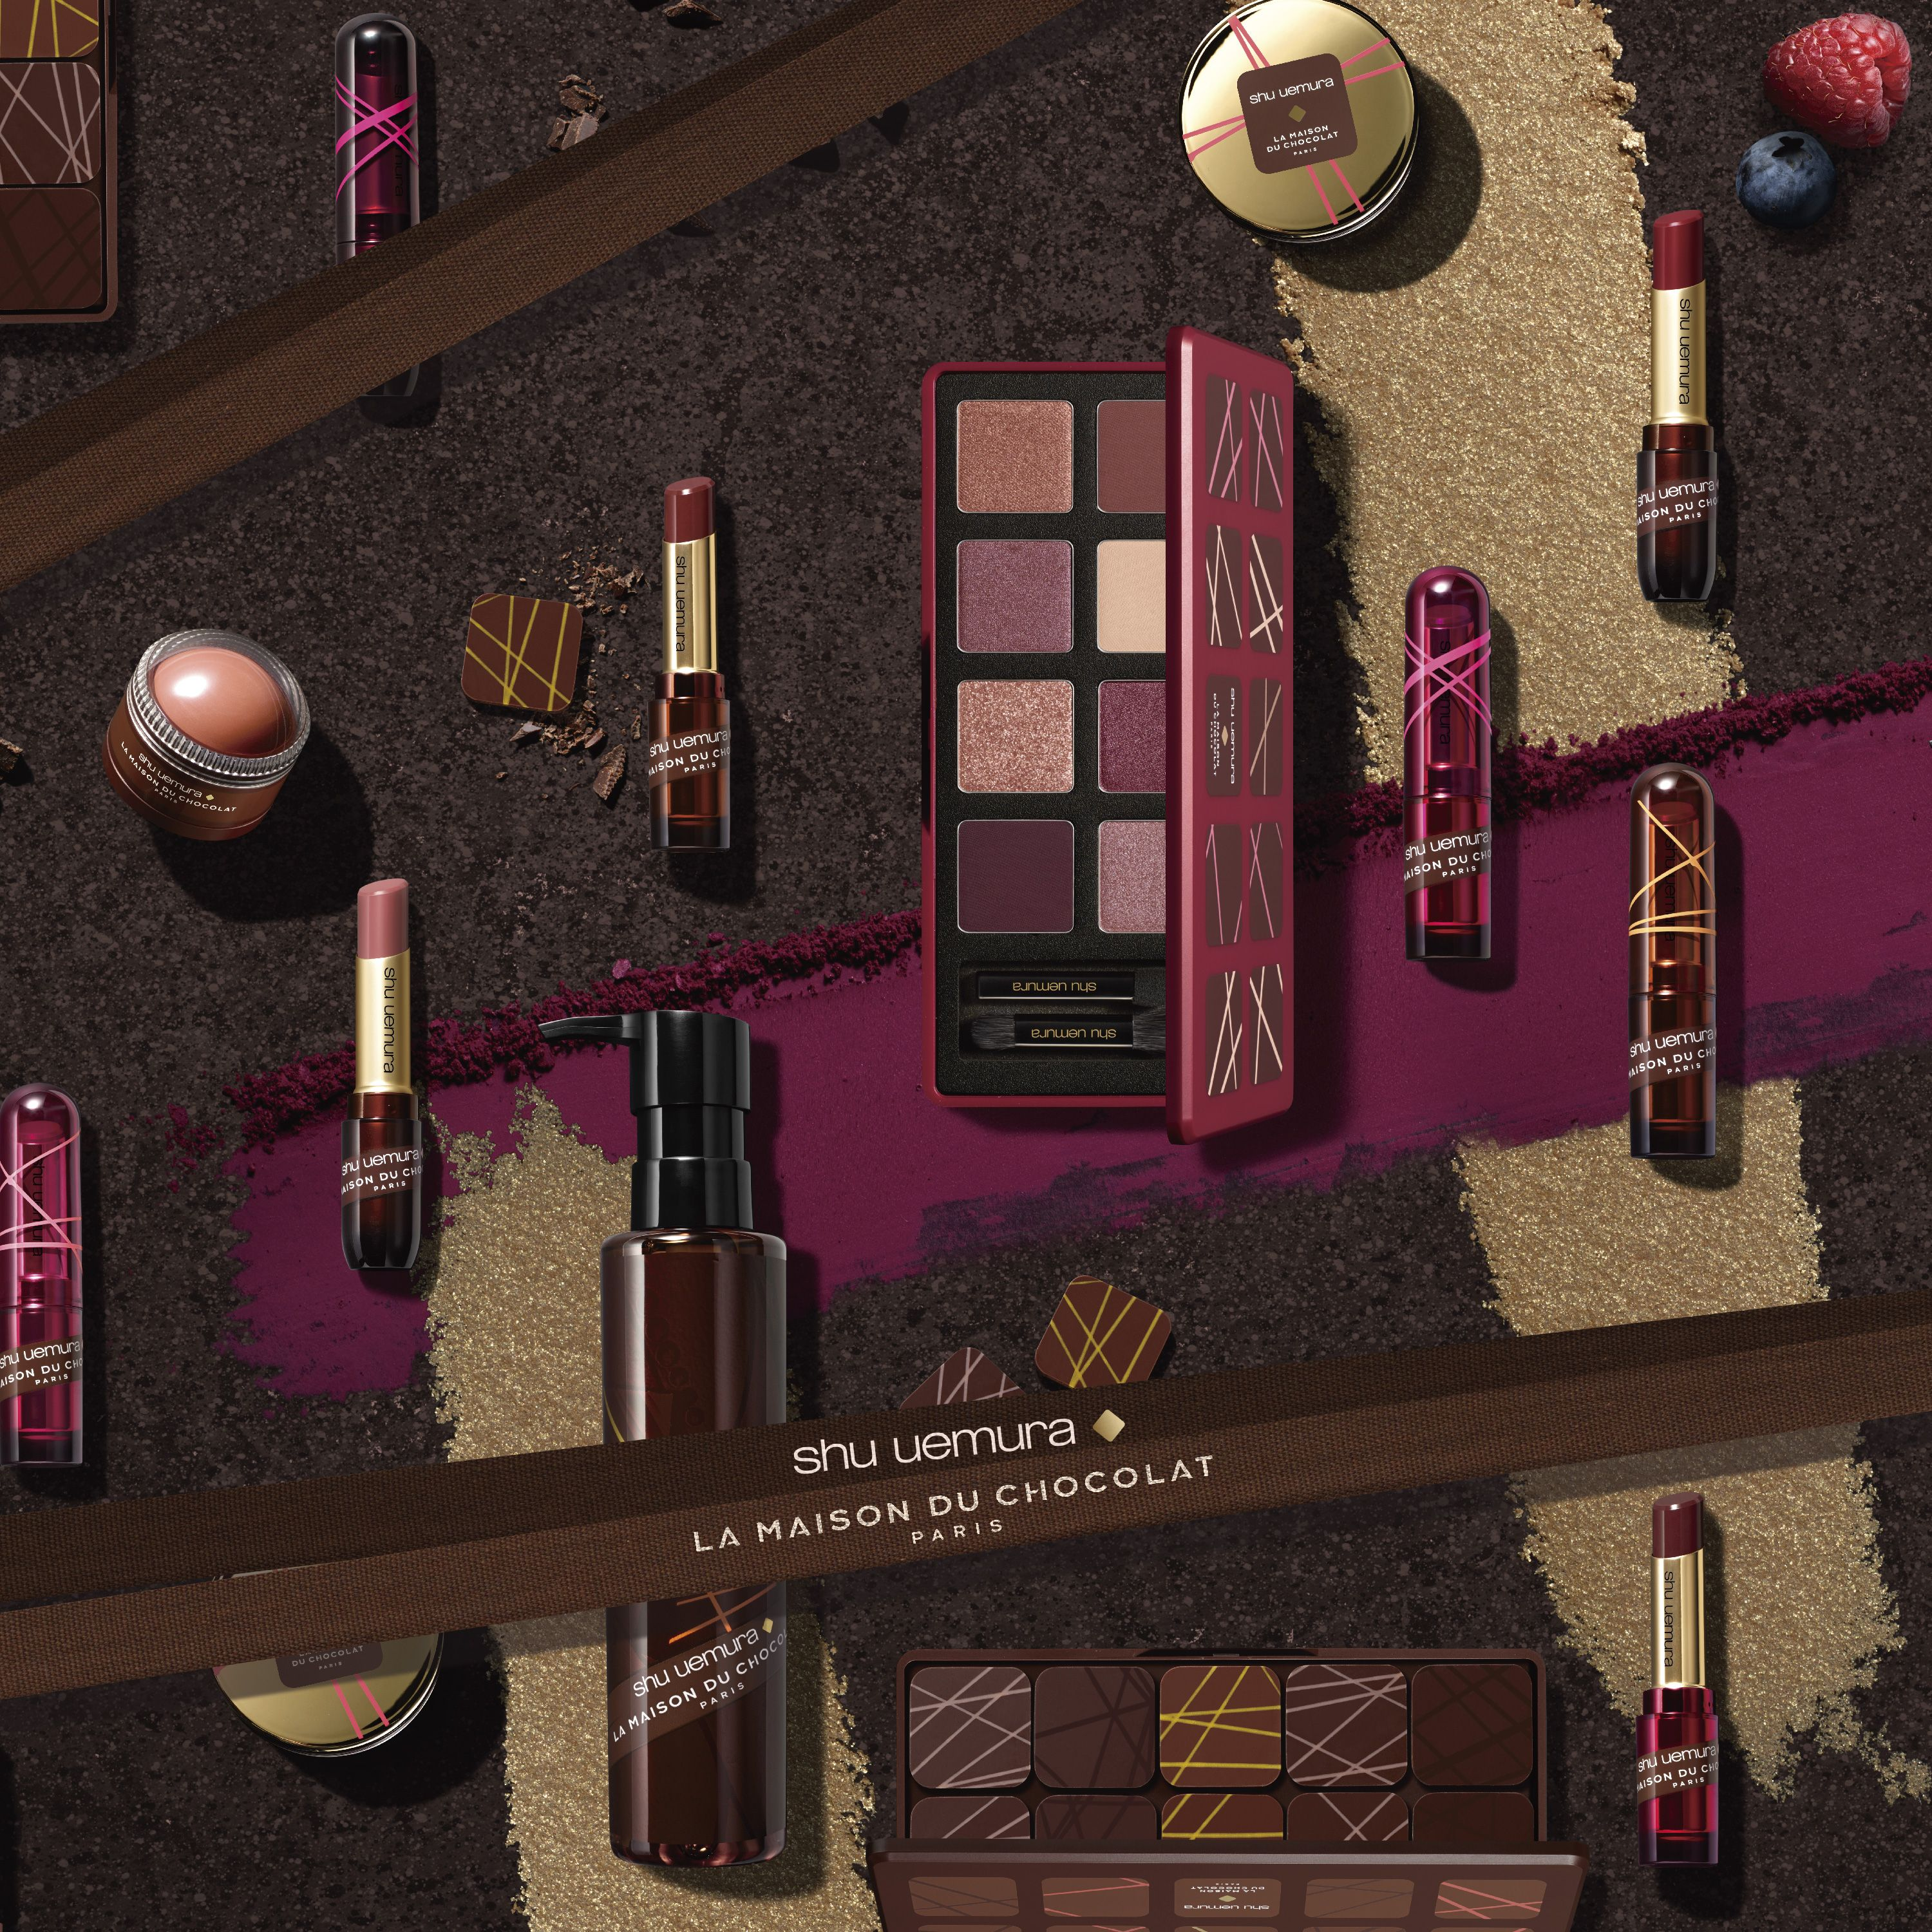 Shu Uemura Is Collaborating With La Maison Du Chocolat 3 Complete Shades Of Collaboration Limited Edition